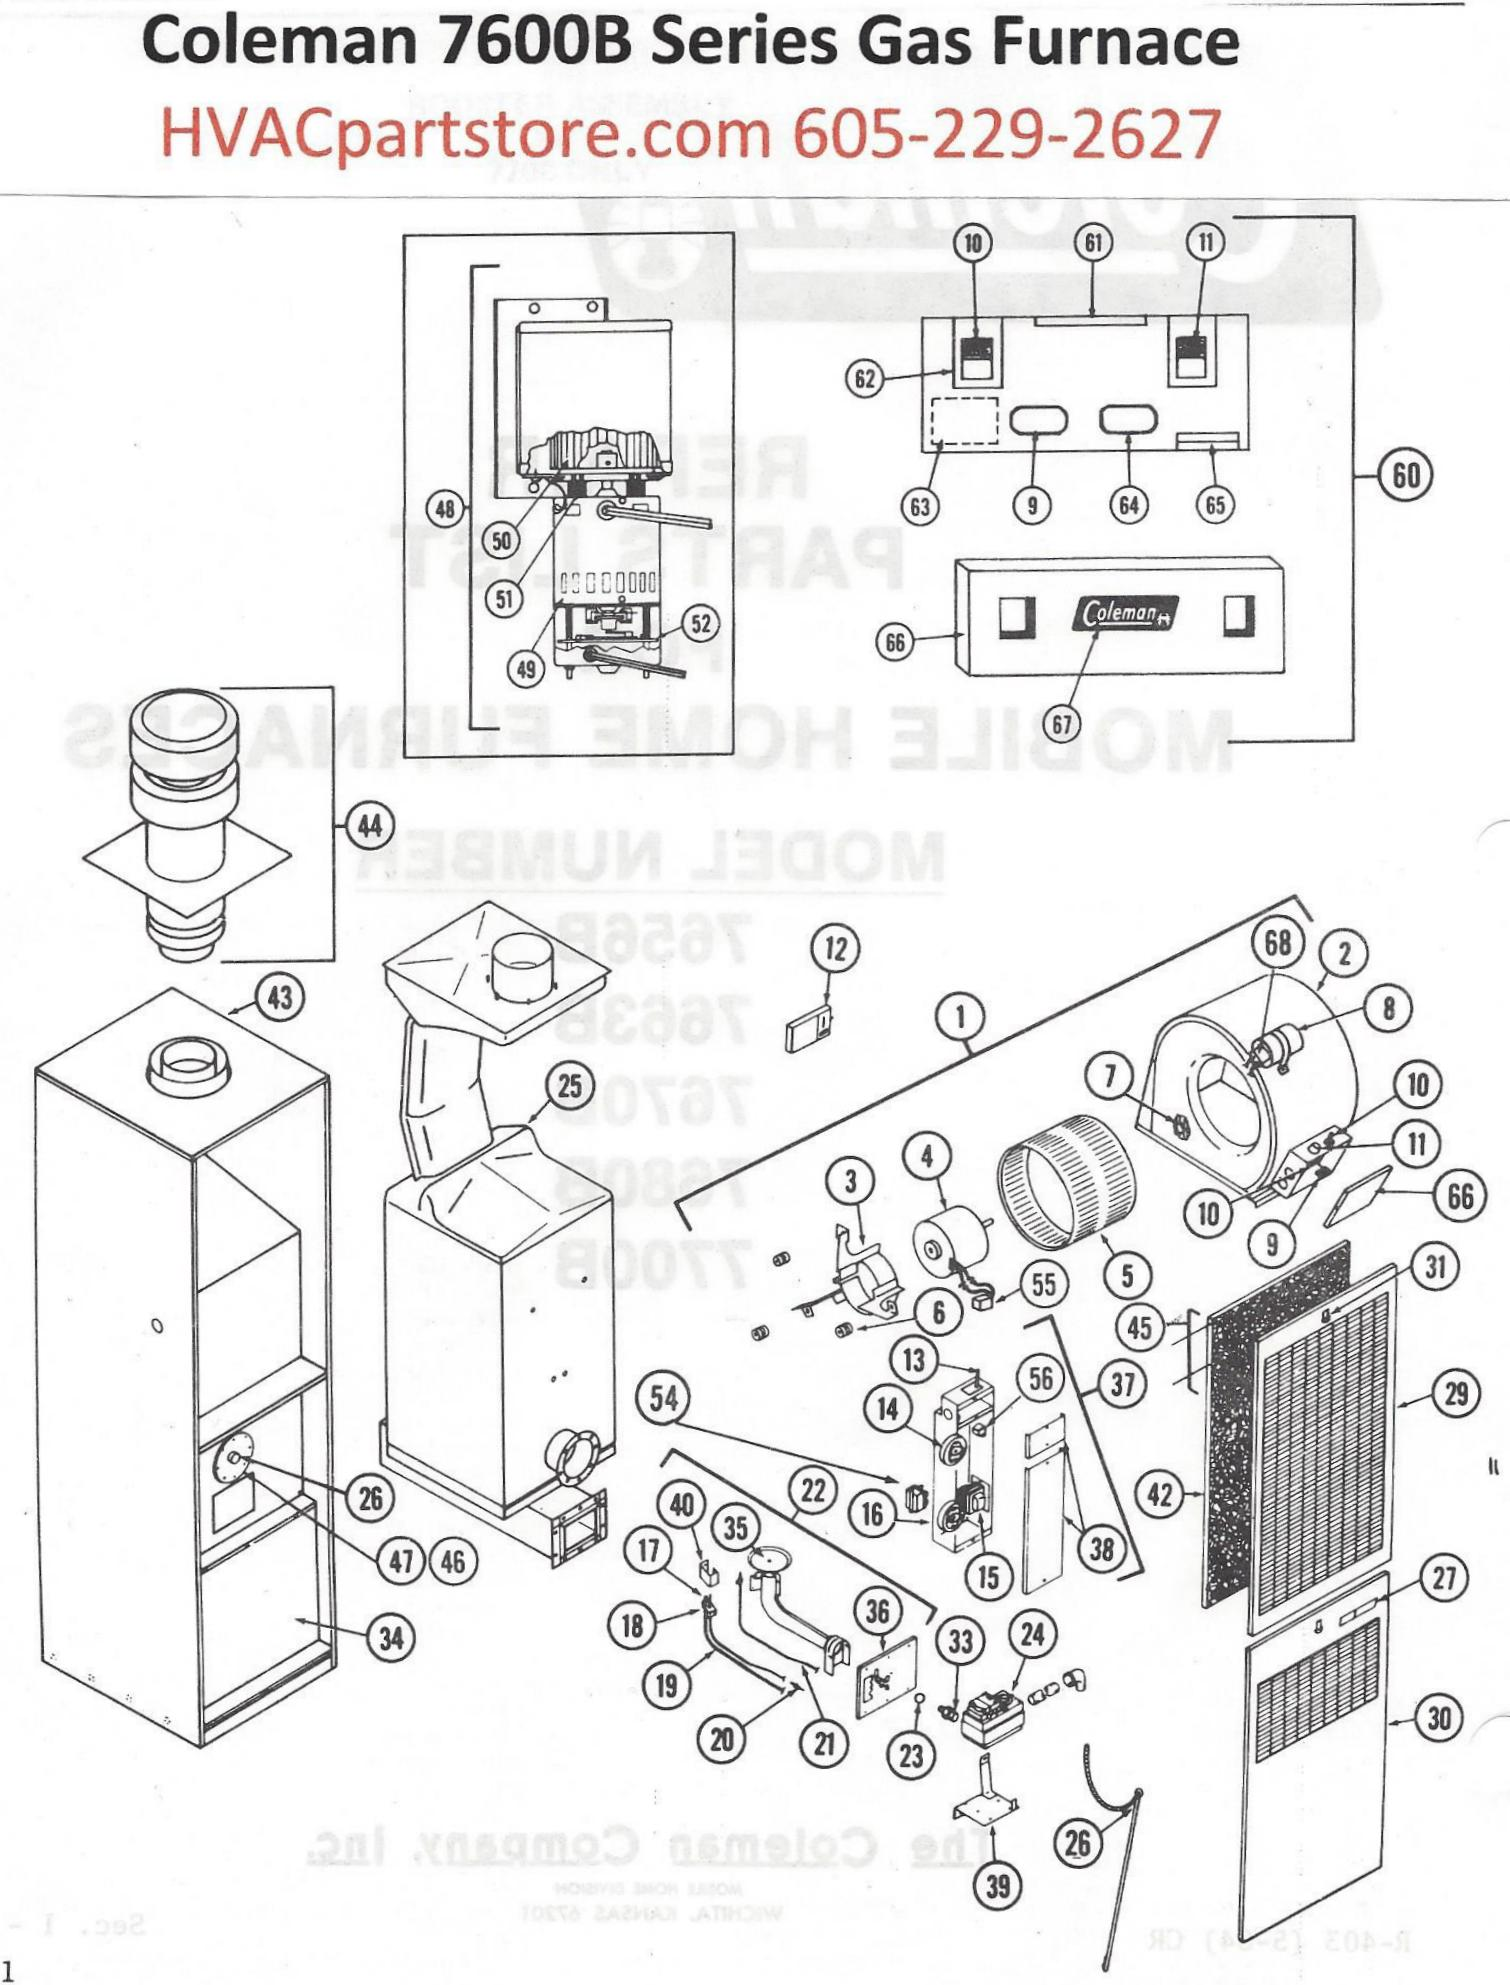 7680b856 coleman gas furnace parts  u2013 hvacpartstore